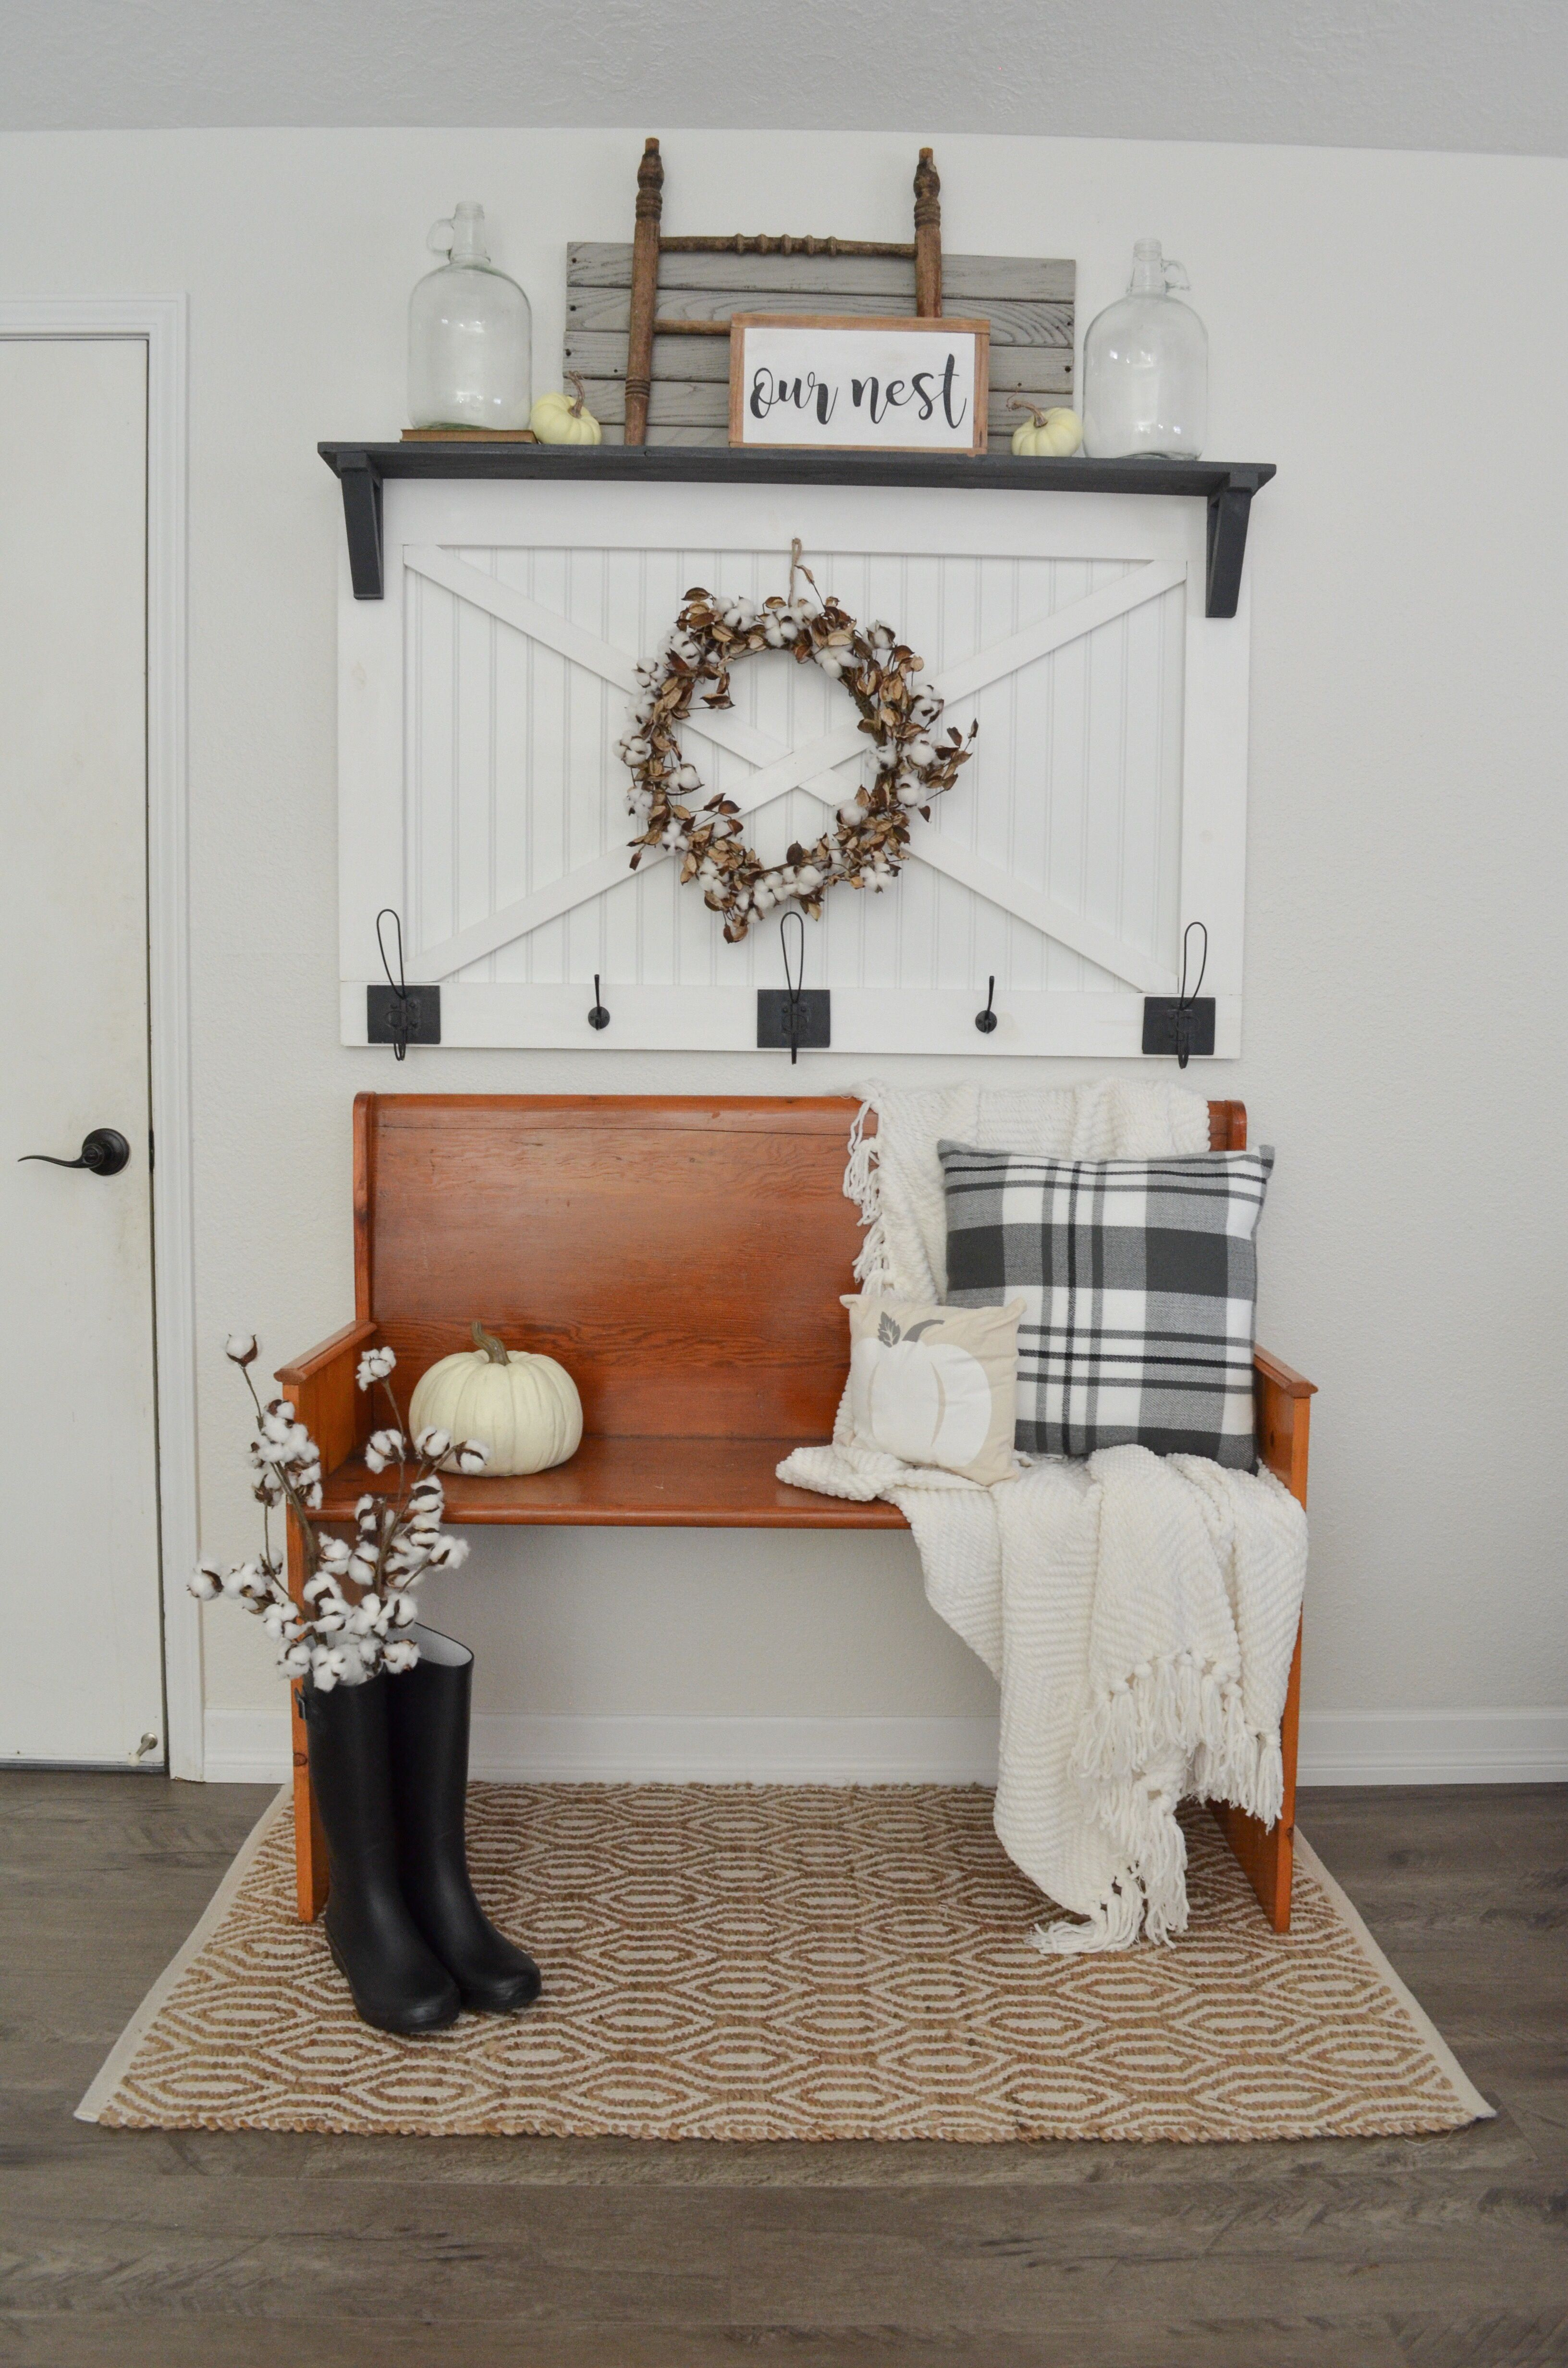 Farmhouse Foyer Ideas : Cozy fall farmhouse entryway plaid decor and